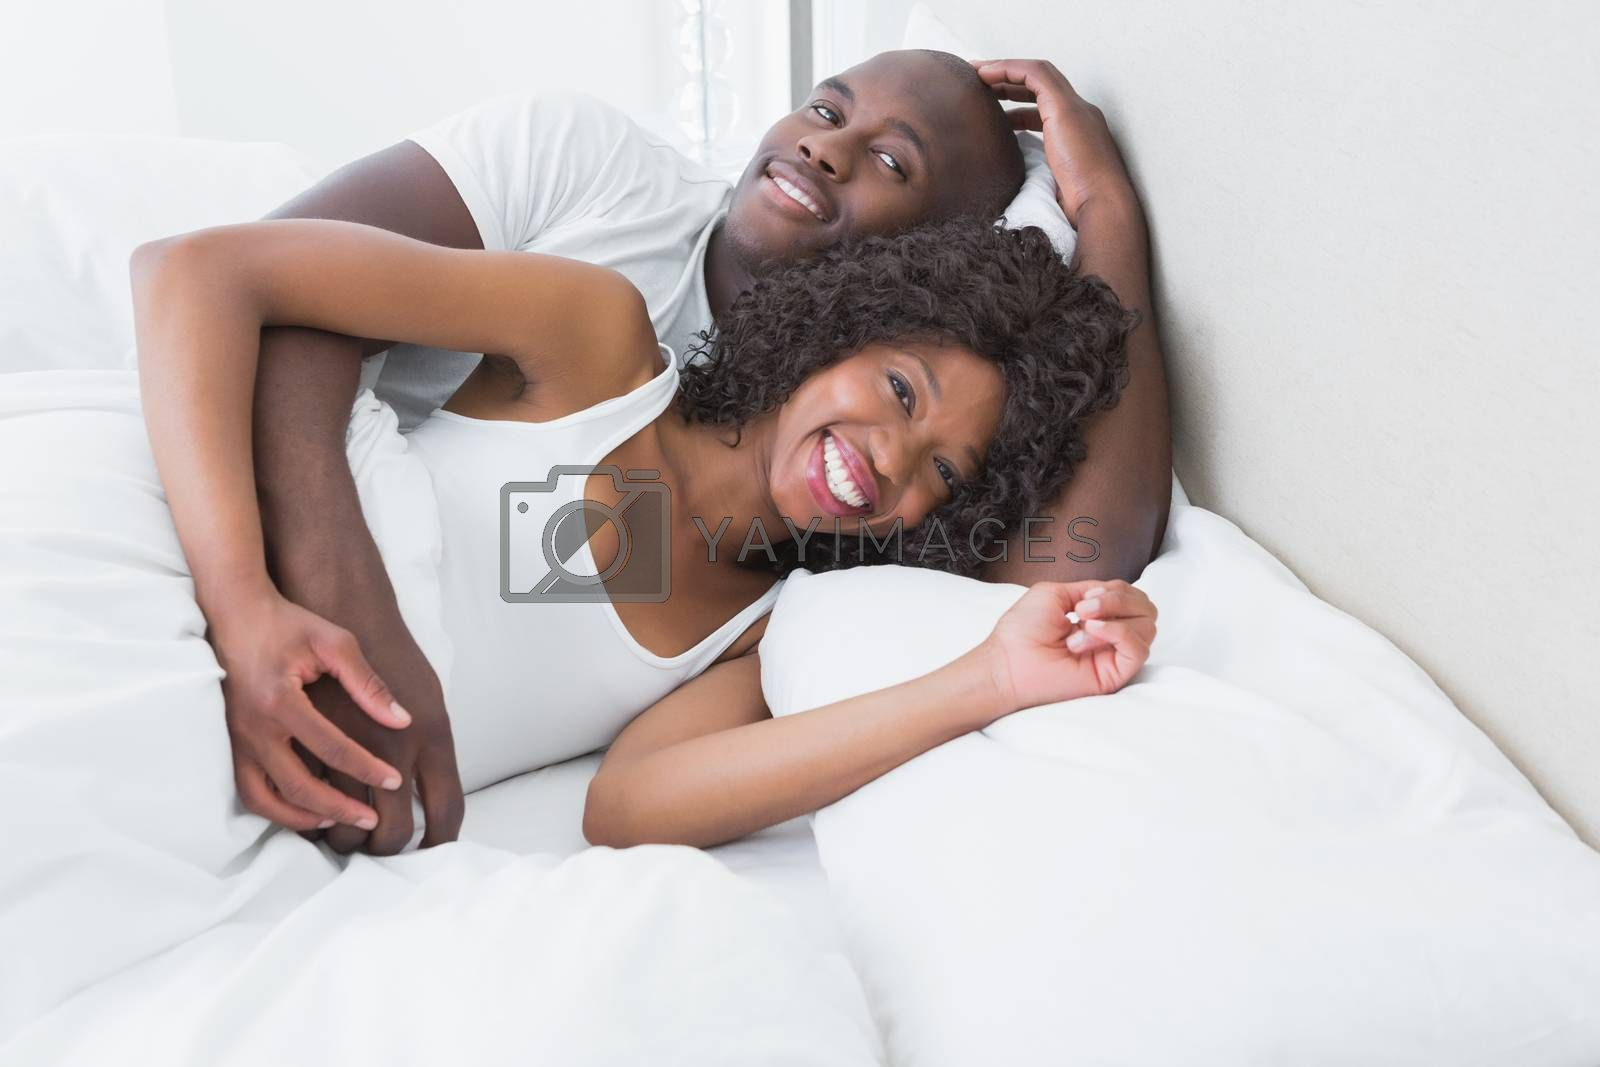 Royalty free image of A very cute couple in bed together  by Wavebreakmedia